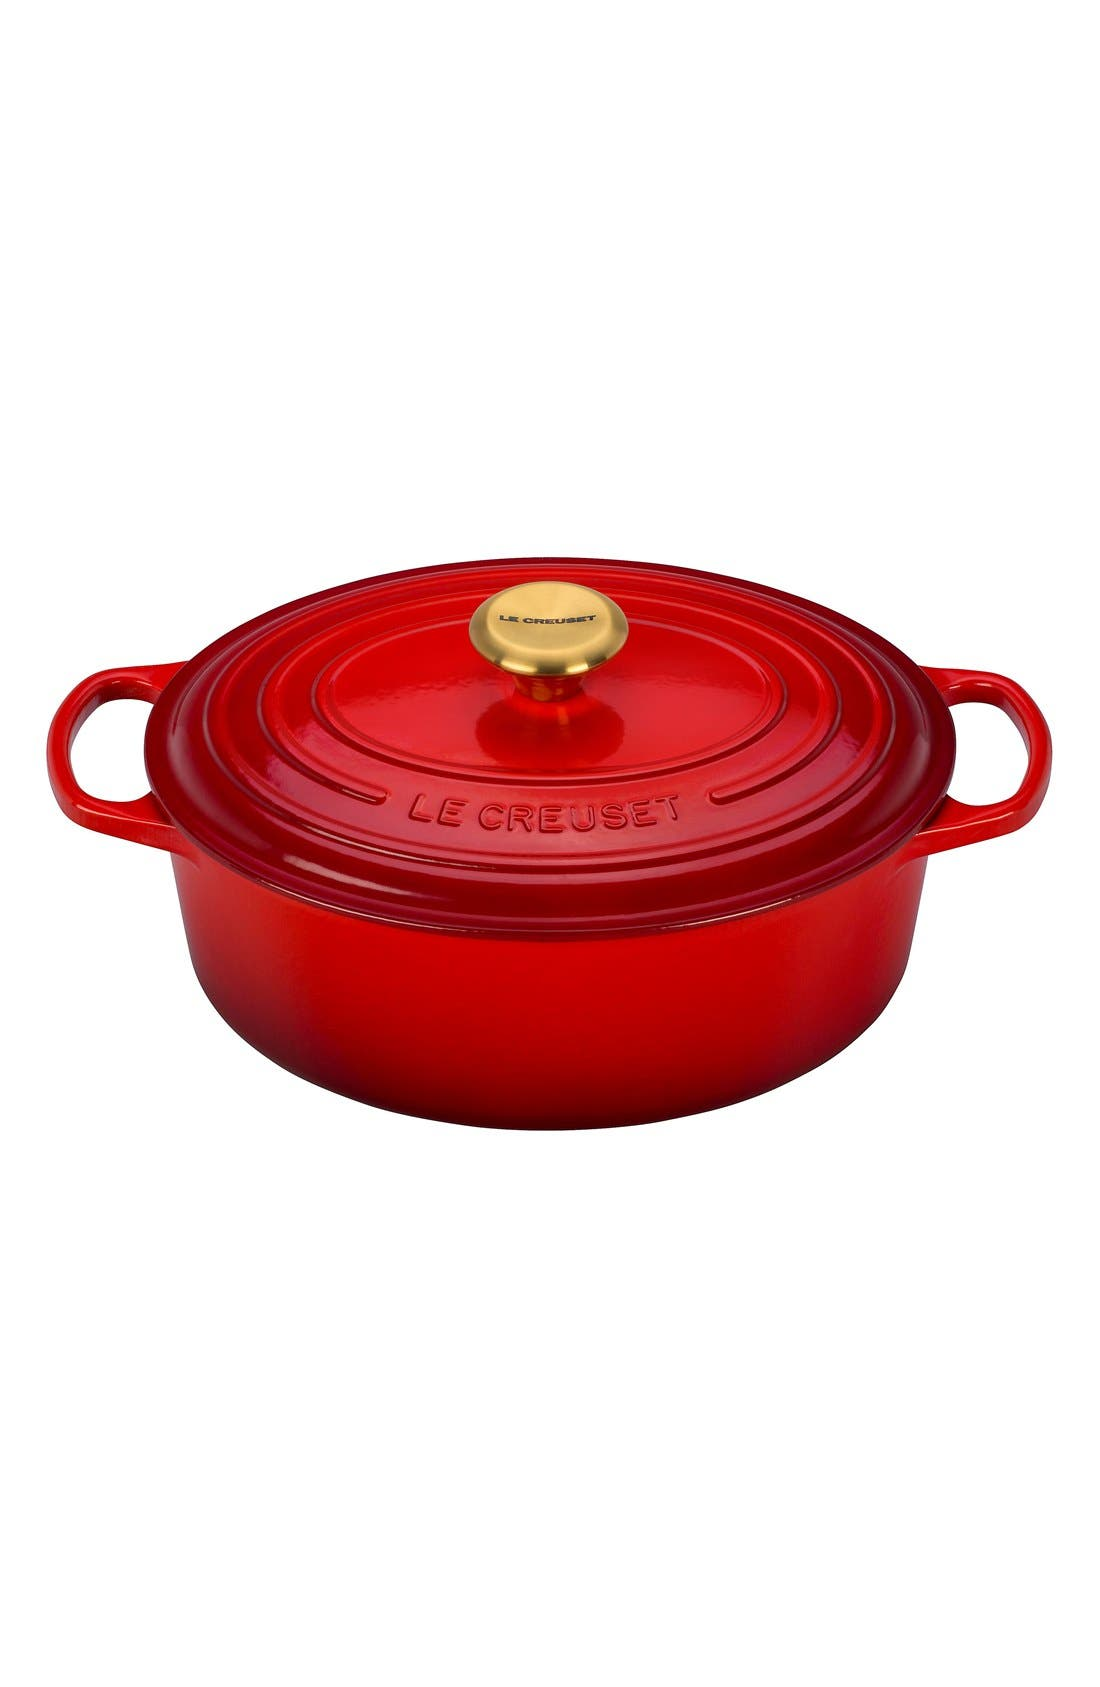 Gold Knob Collection 5 Quart Oval French/Dutch Oven,                             Main thumbnail 1, color,                             Cherry/Cerise Gold